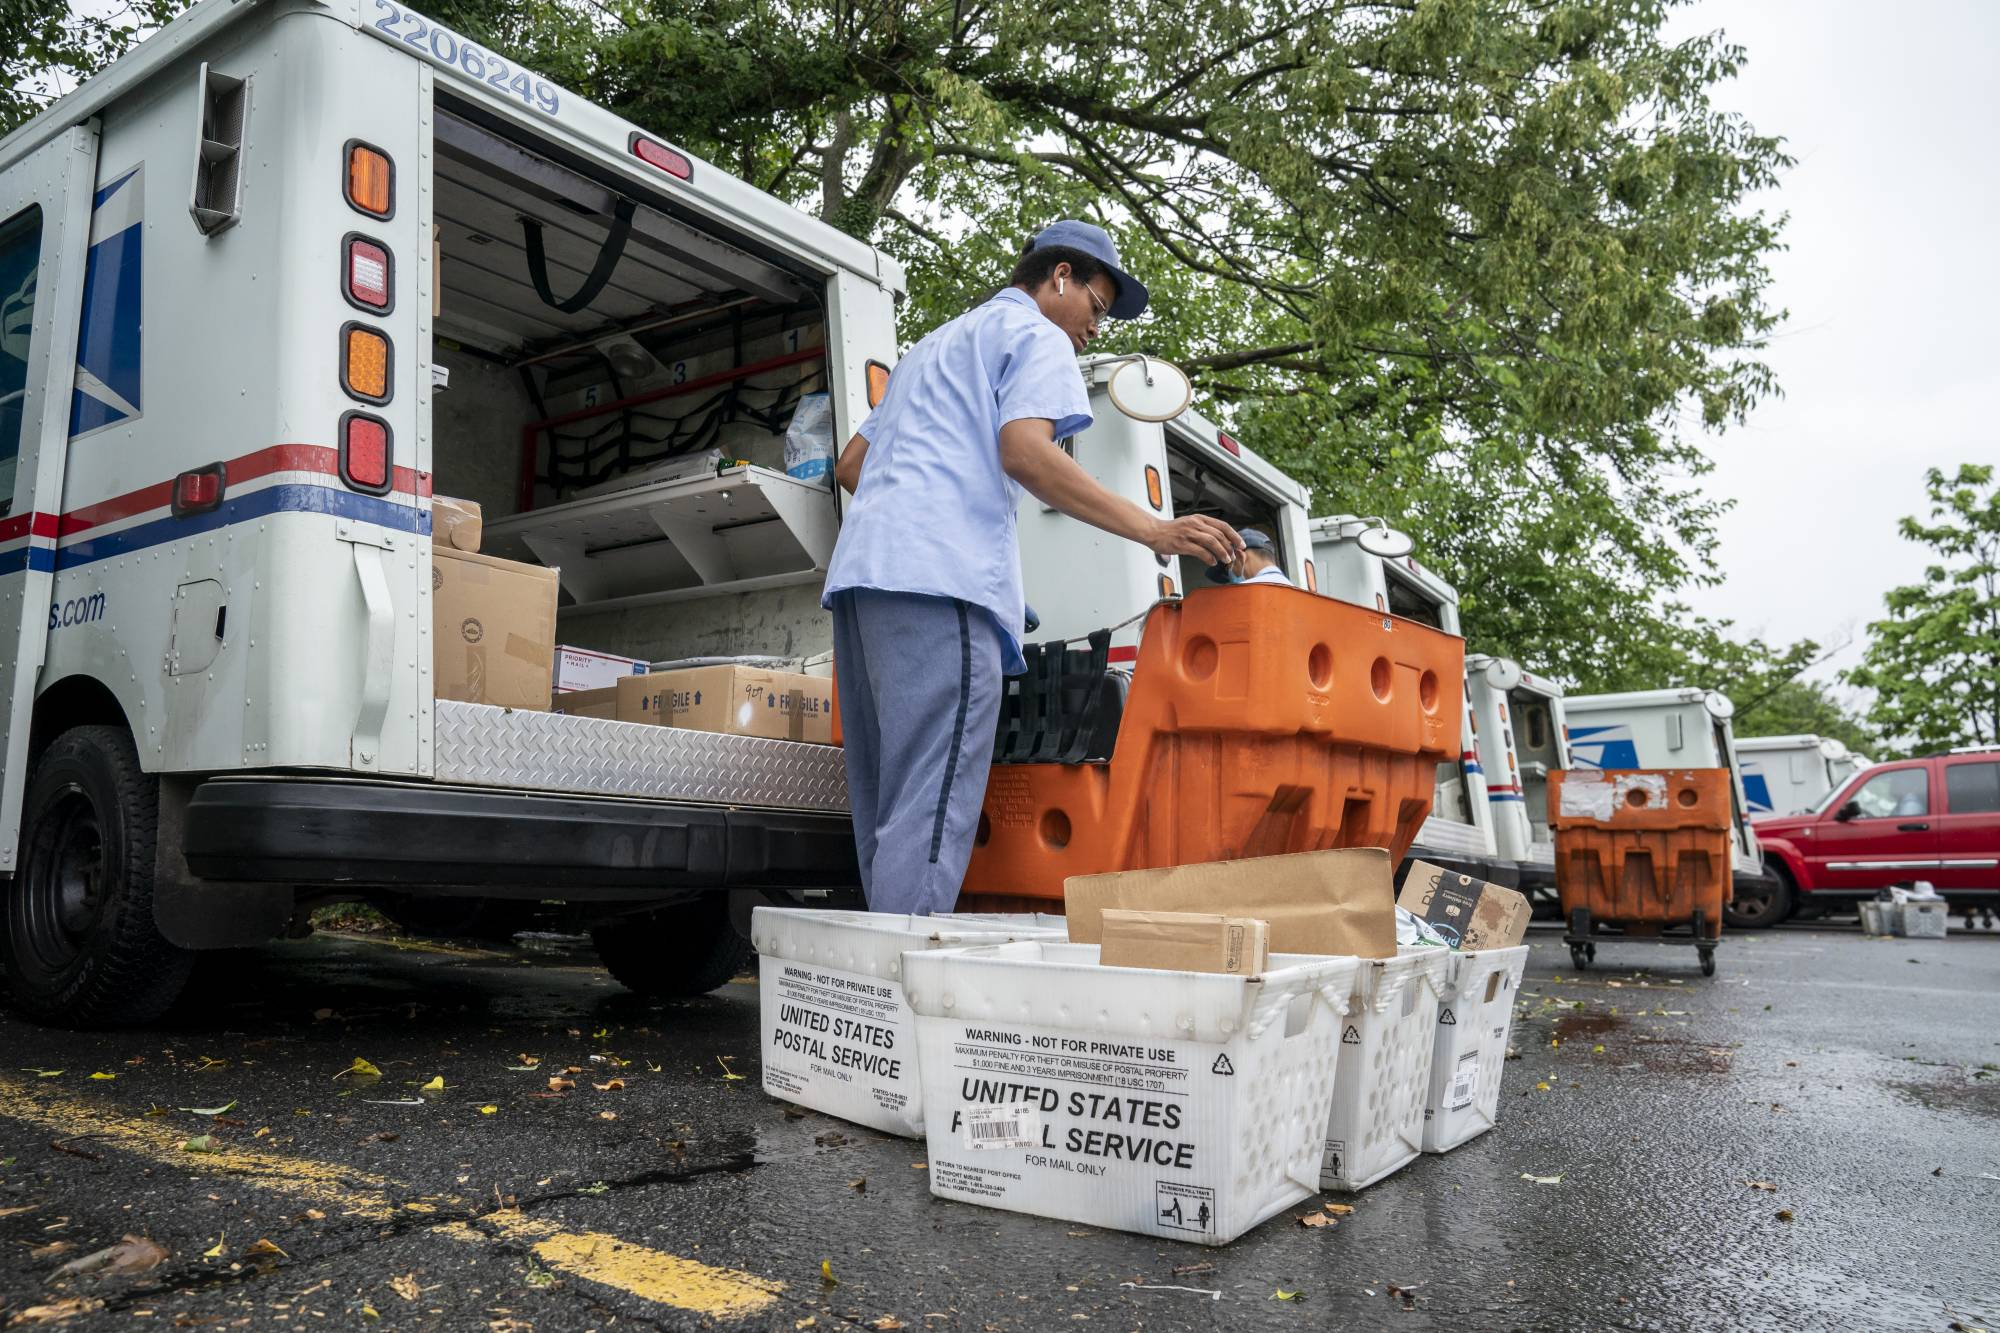 Letter carriers load mail trucks for deliveries at a U.S. Postal Service facility in McLean, Va., Friday, July 31, 2020. Delays caused by an increase in voting by mail may contribute to public doubts about the results. The public might not know the winner of the presidential race on Election Day because of a massive shift to voting by mail during the coronavirus pandemic. That's because mail ballots take longer to count because of security procedures and laws in some states that limit when they can be processed.  (AP Photo/J. Scott Applewhite)